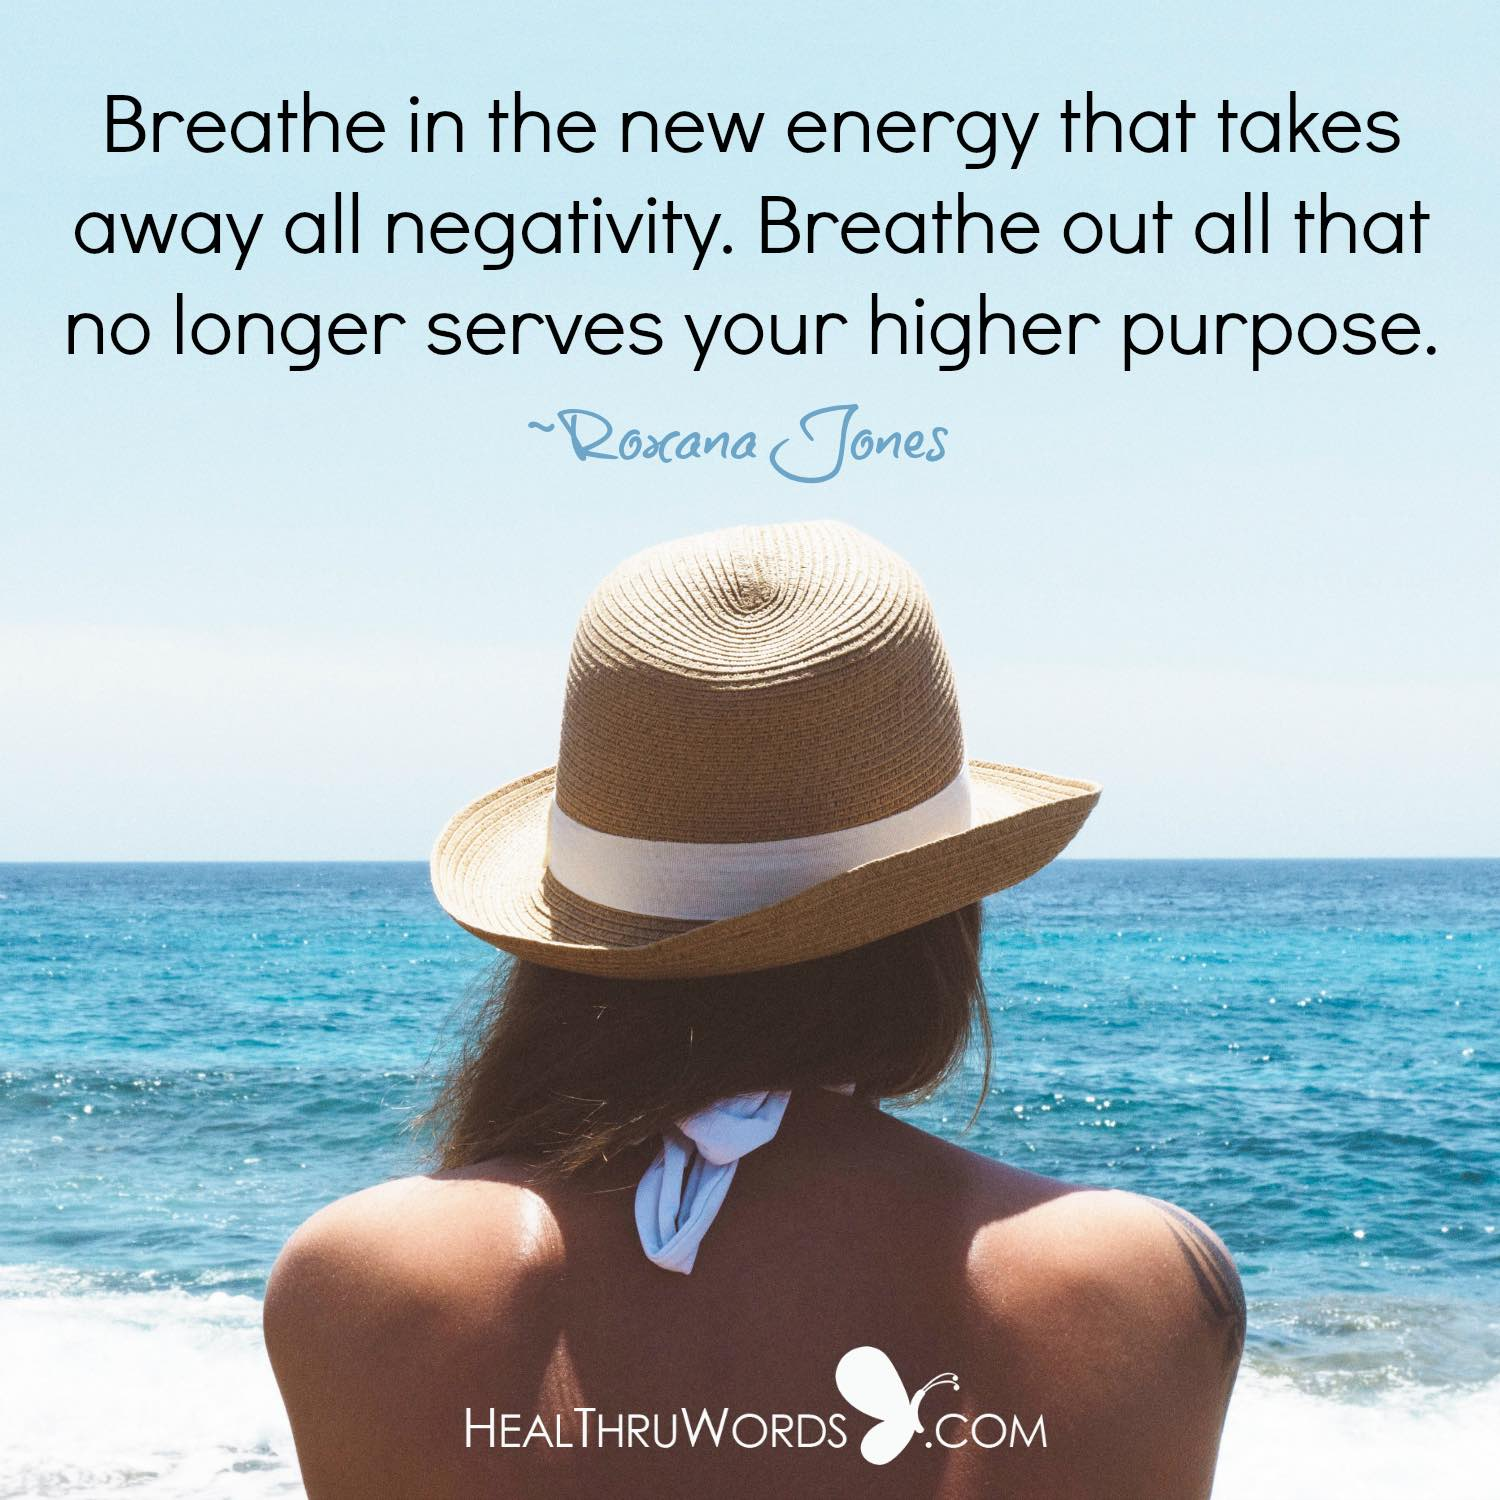 Inspirational Image: Breathing the New